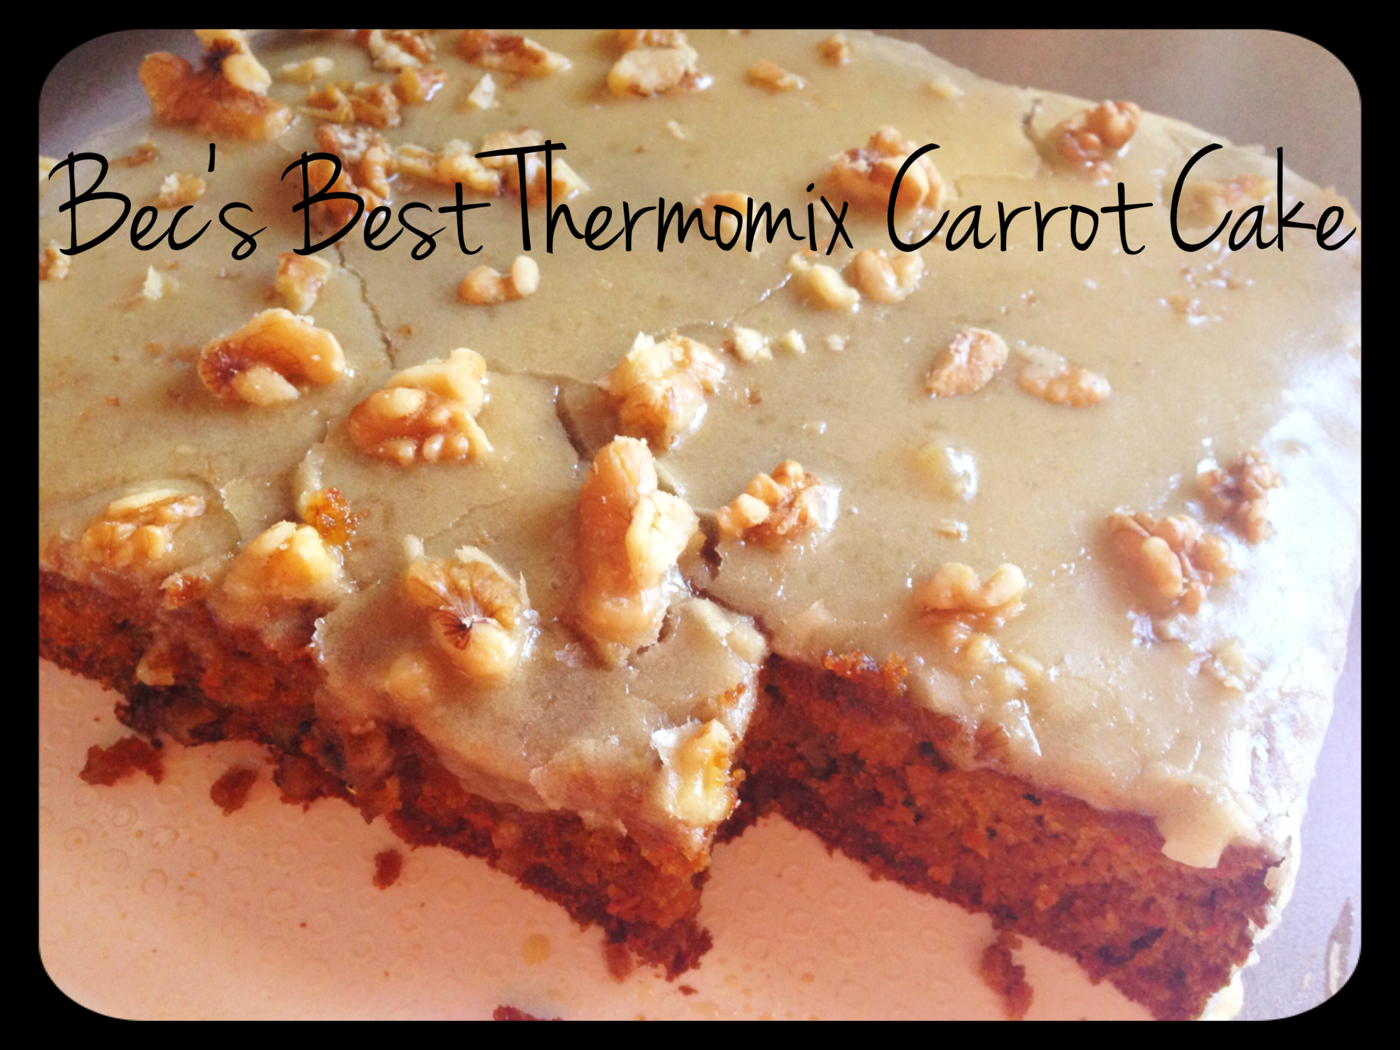 Bec S Best Thermomix Carrot Cake The 4 Blades Thermomix Carrot Cake Thermomix Baking Thermomix Recipes